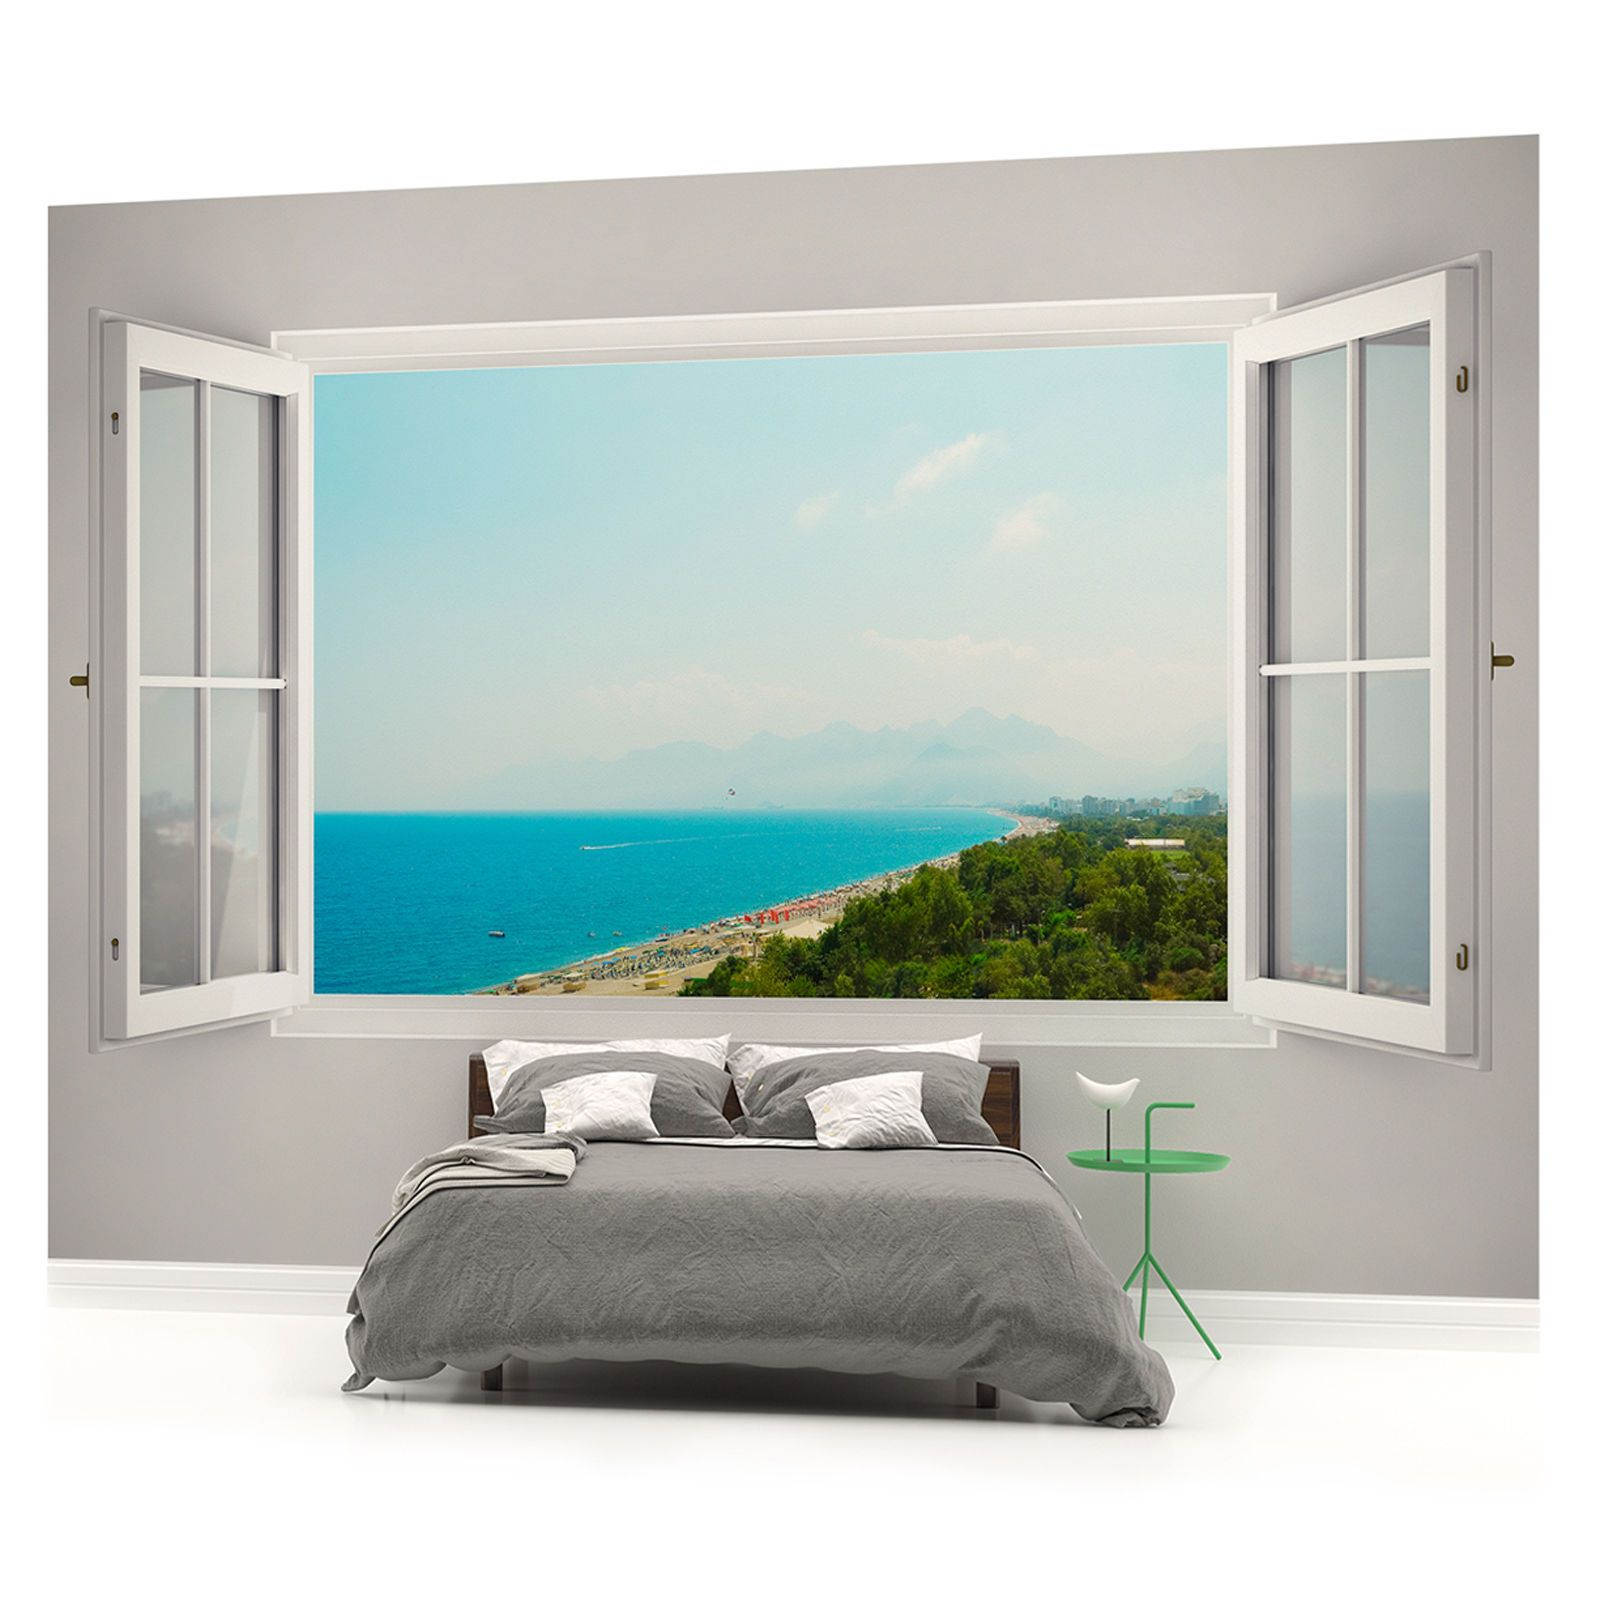 meerblick strand meer fototapeten wandbild fototapete bild. Black Bedroom Furniture Sets. Home Design Ideas